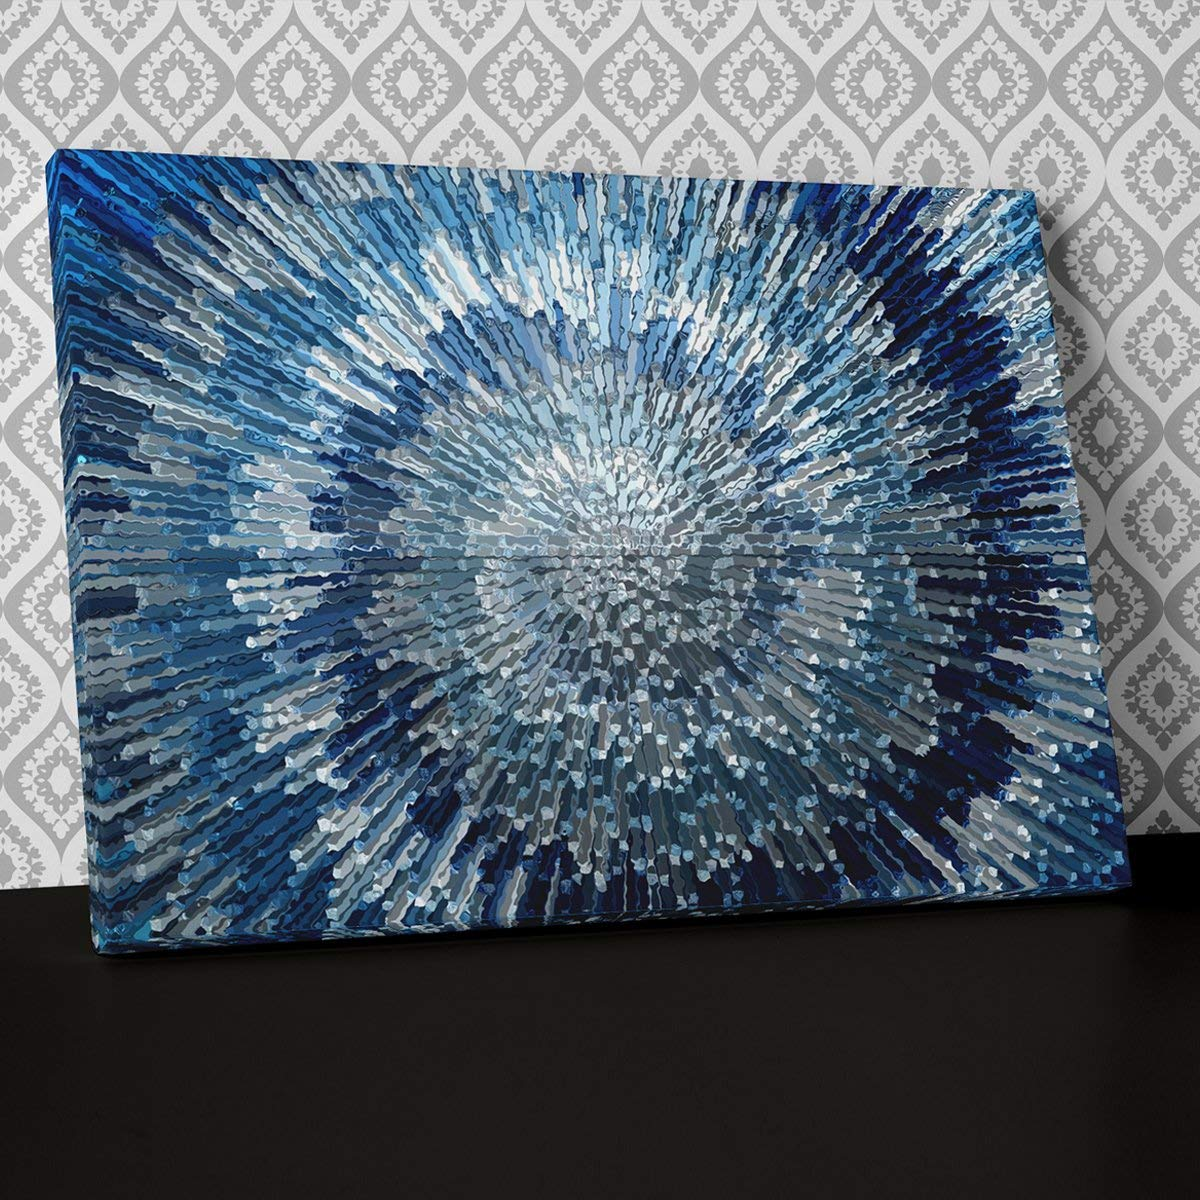 Blue Silver Swirl Design Canvas Wall Art, Framed Ready to Hang Picture Print AB283